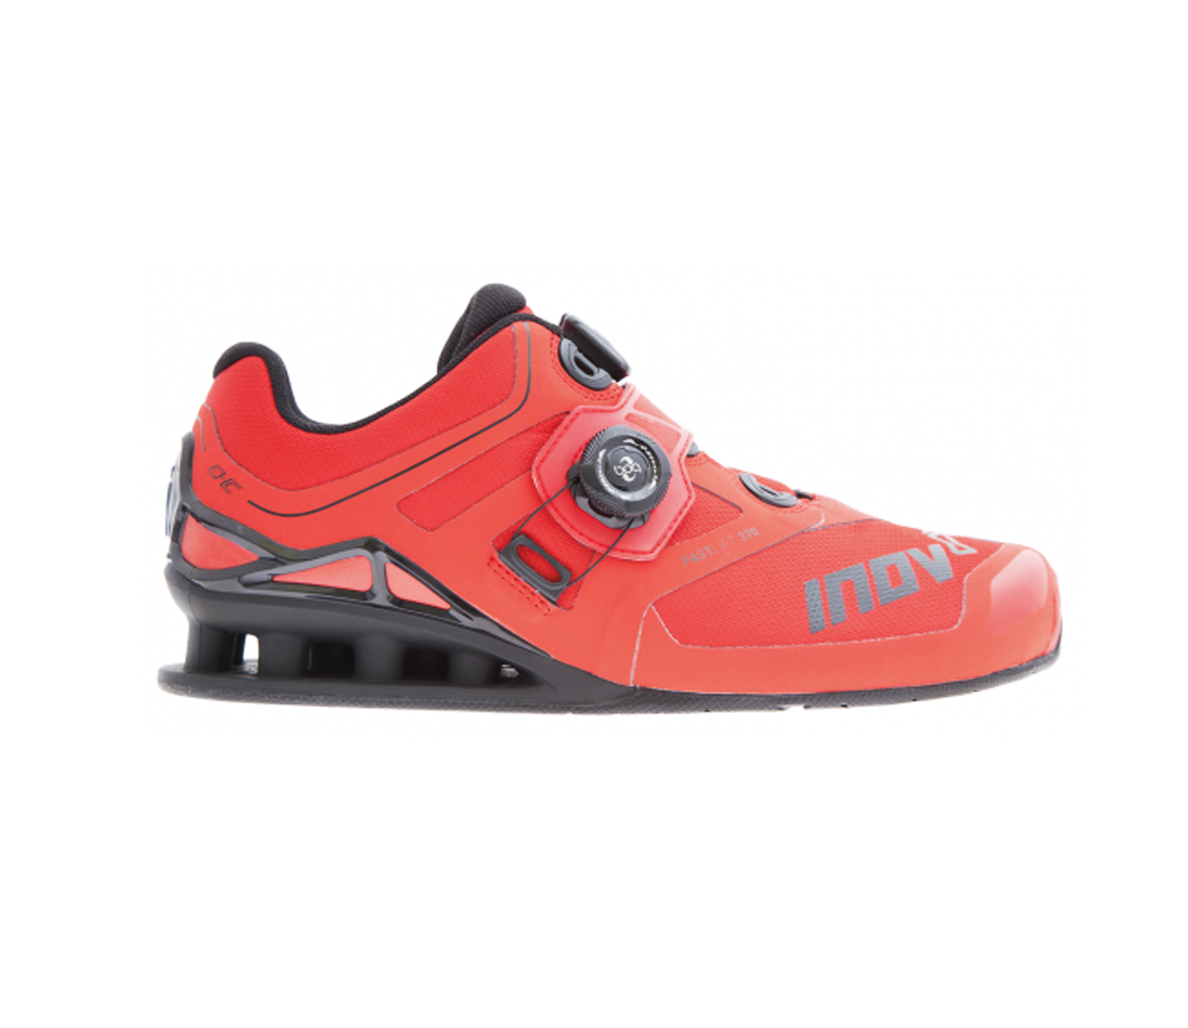 Weightlifting Shoes: The Best New Pairs for Powerlifting and